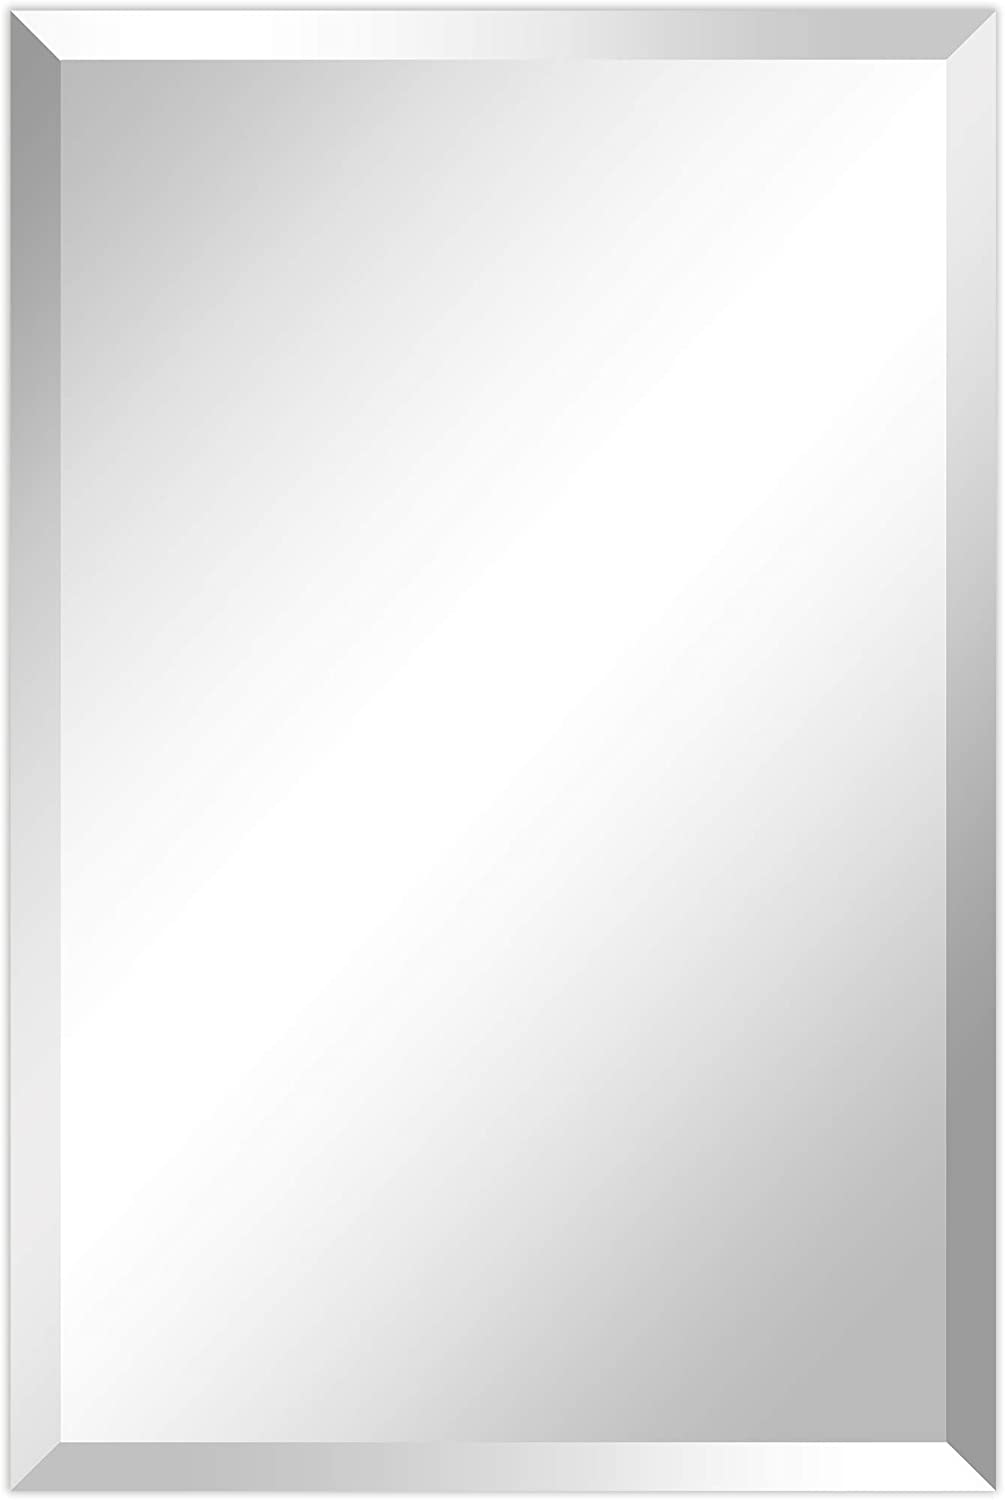 """Empire Art Direct Wall, Frameless Prism Panel,1""""-Beveled Edge Modern Mirror for Bathroom,Vanity,Bedroom,Ready to Hang, 20"""" x 30"""", Clear"""